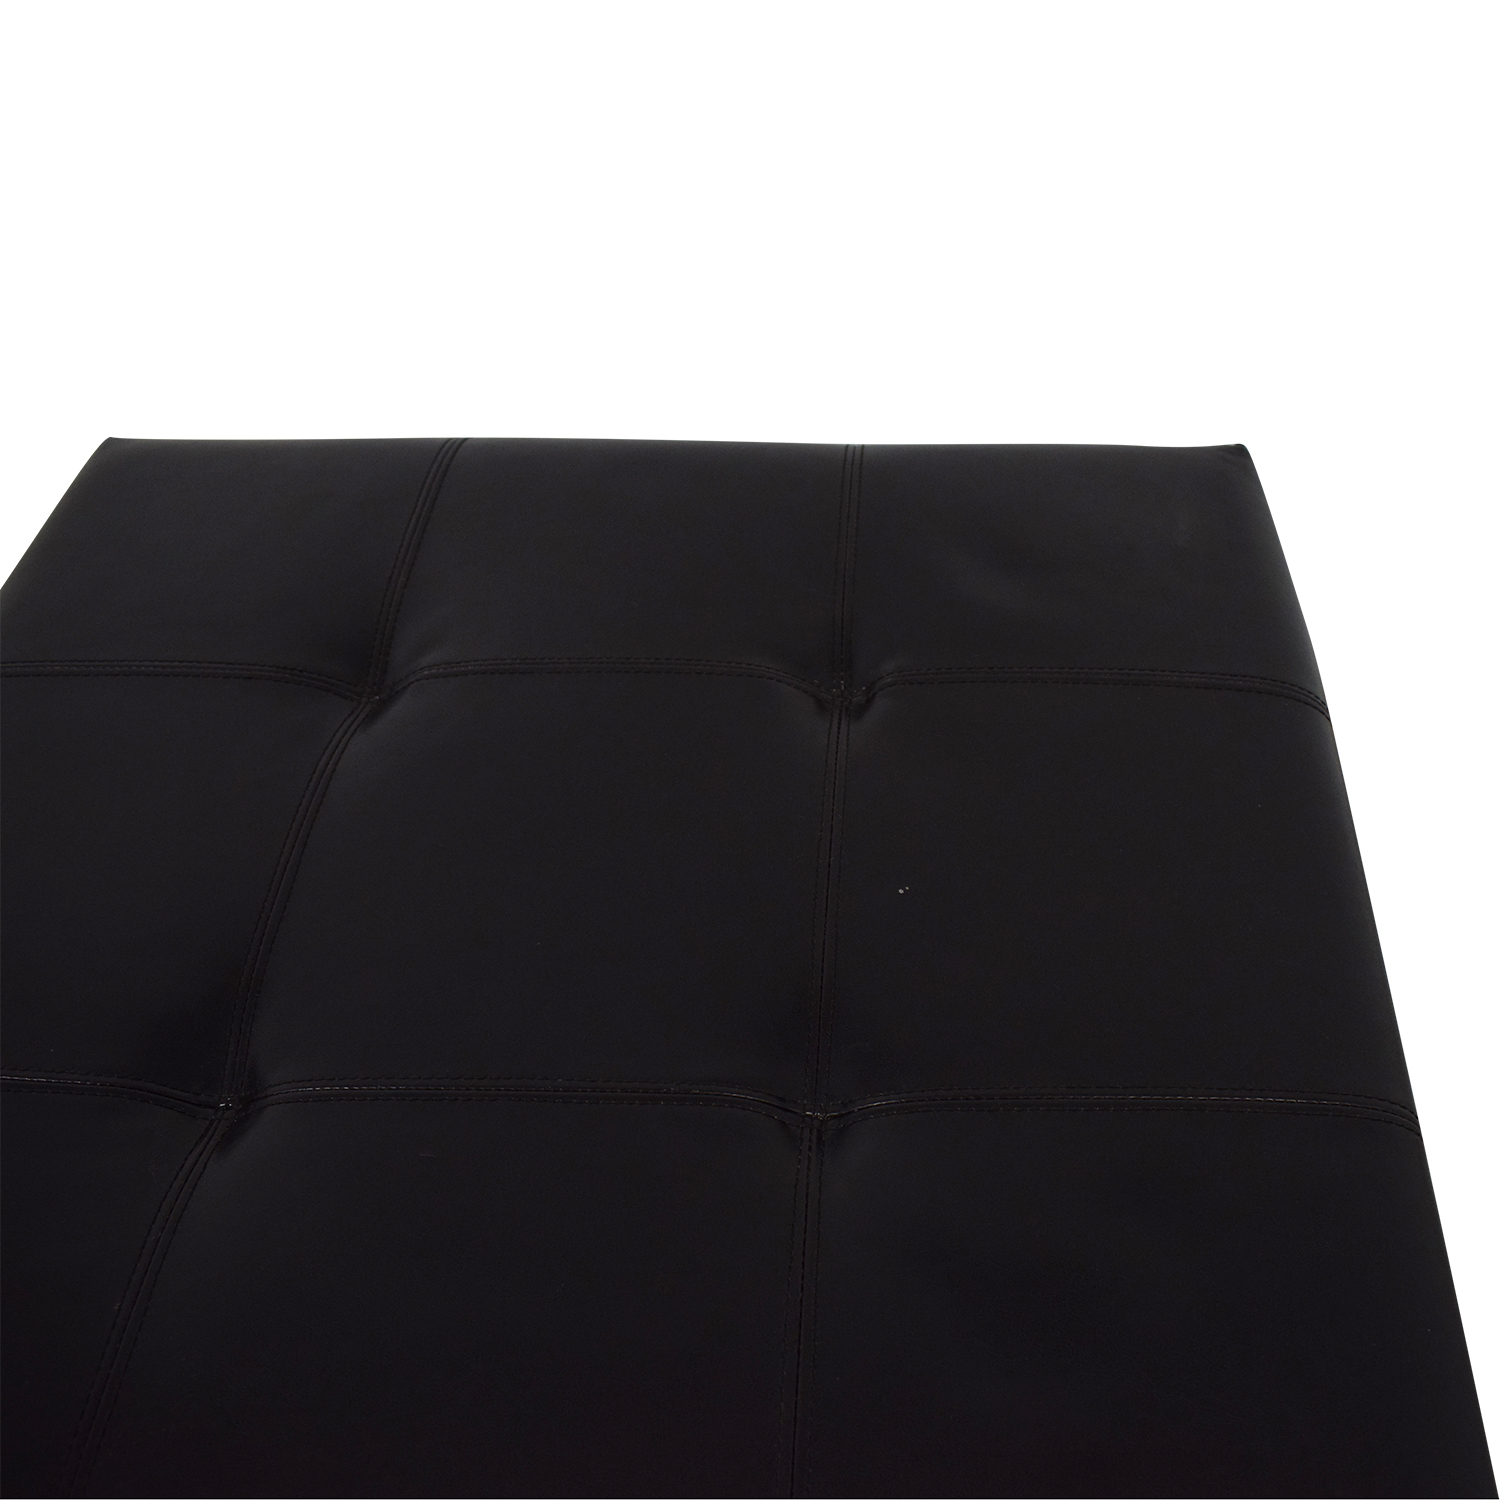 Tufted Storage Ottoman coupon